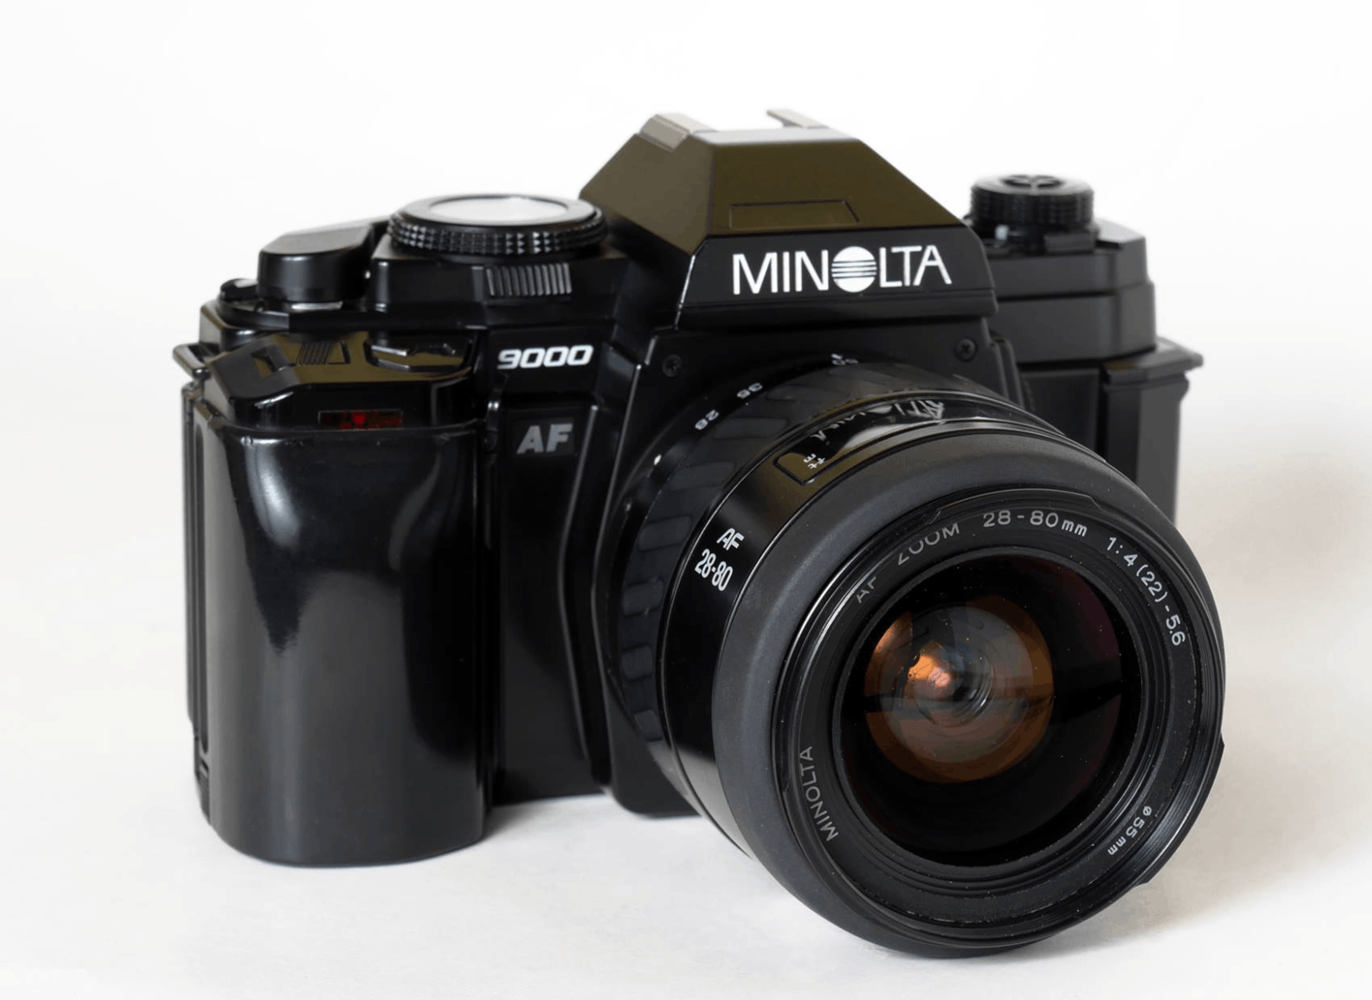 Back to Film: Camera Choices for Sony/Minolta A-Mount | Fstoppers